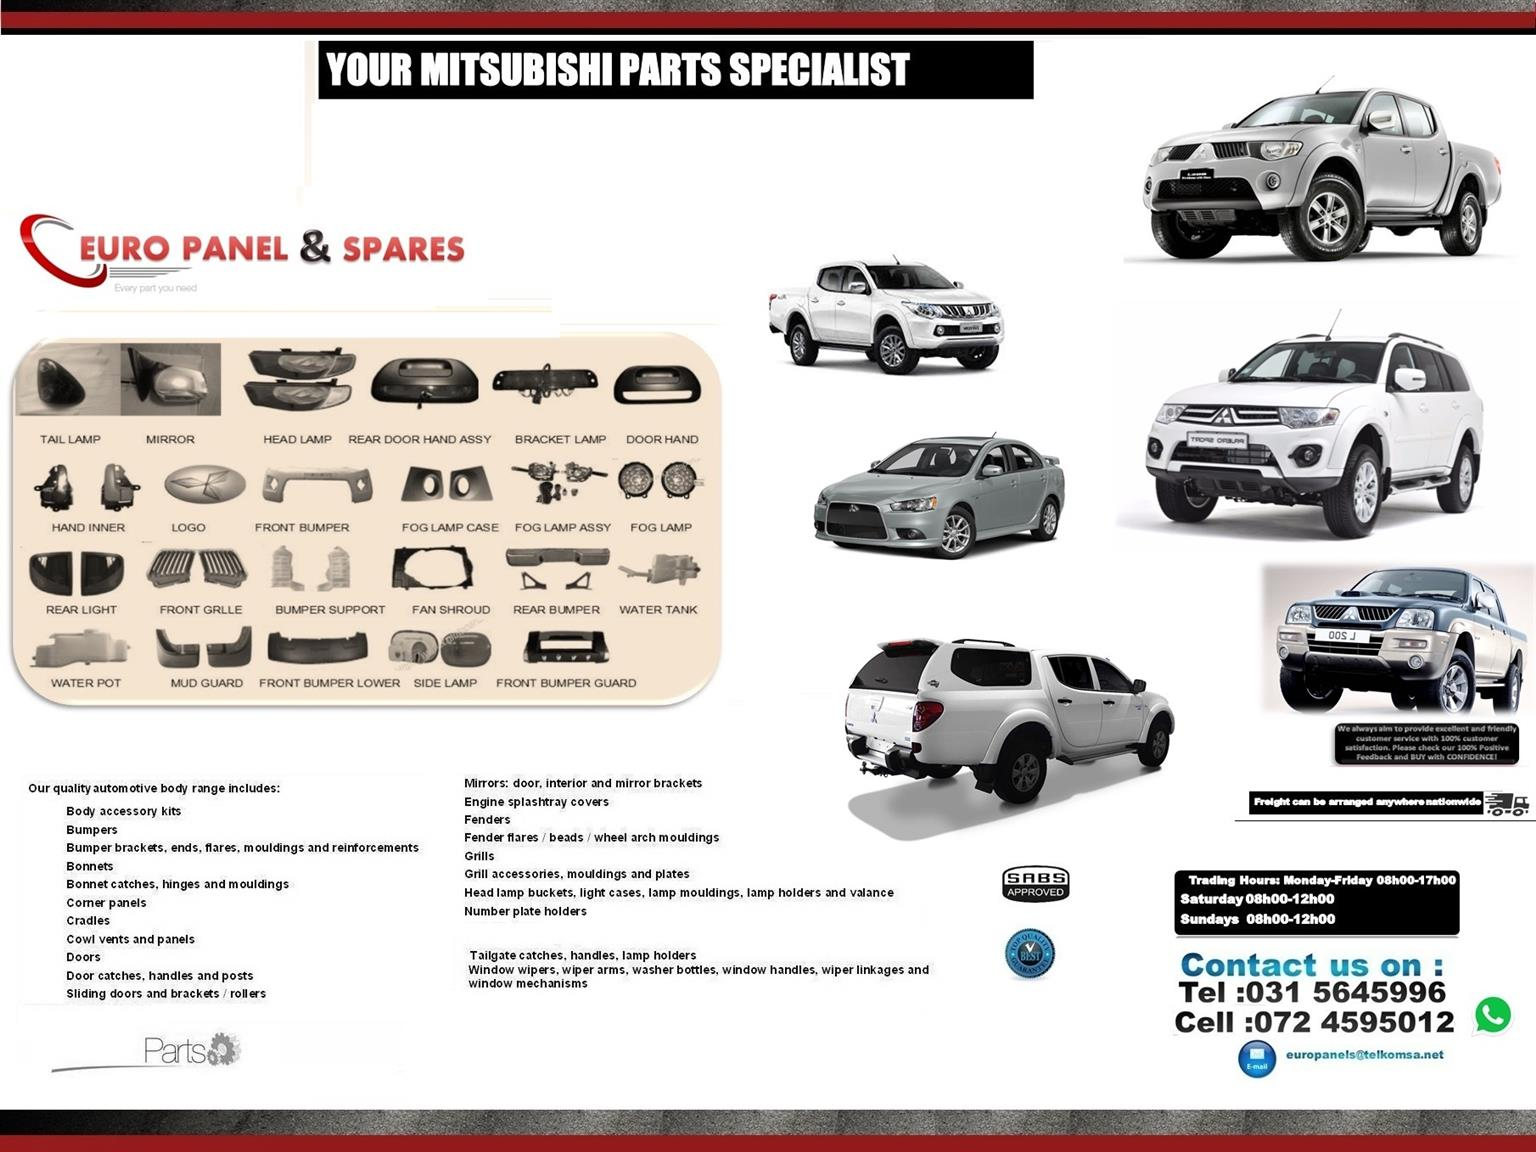 Specialising In Mitsubishi Automotive New Parts Body Parts